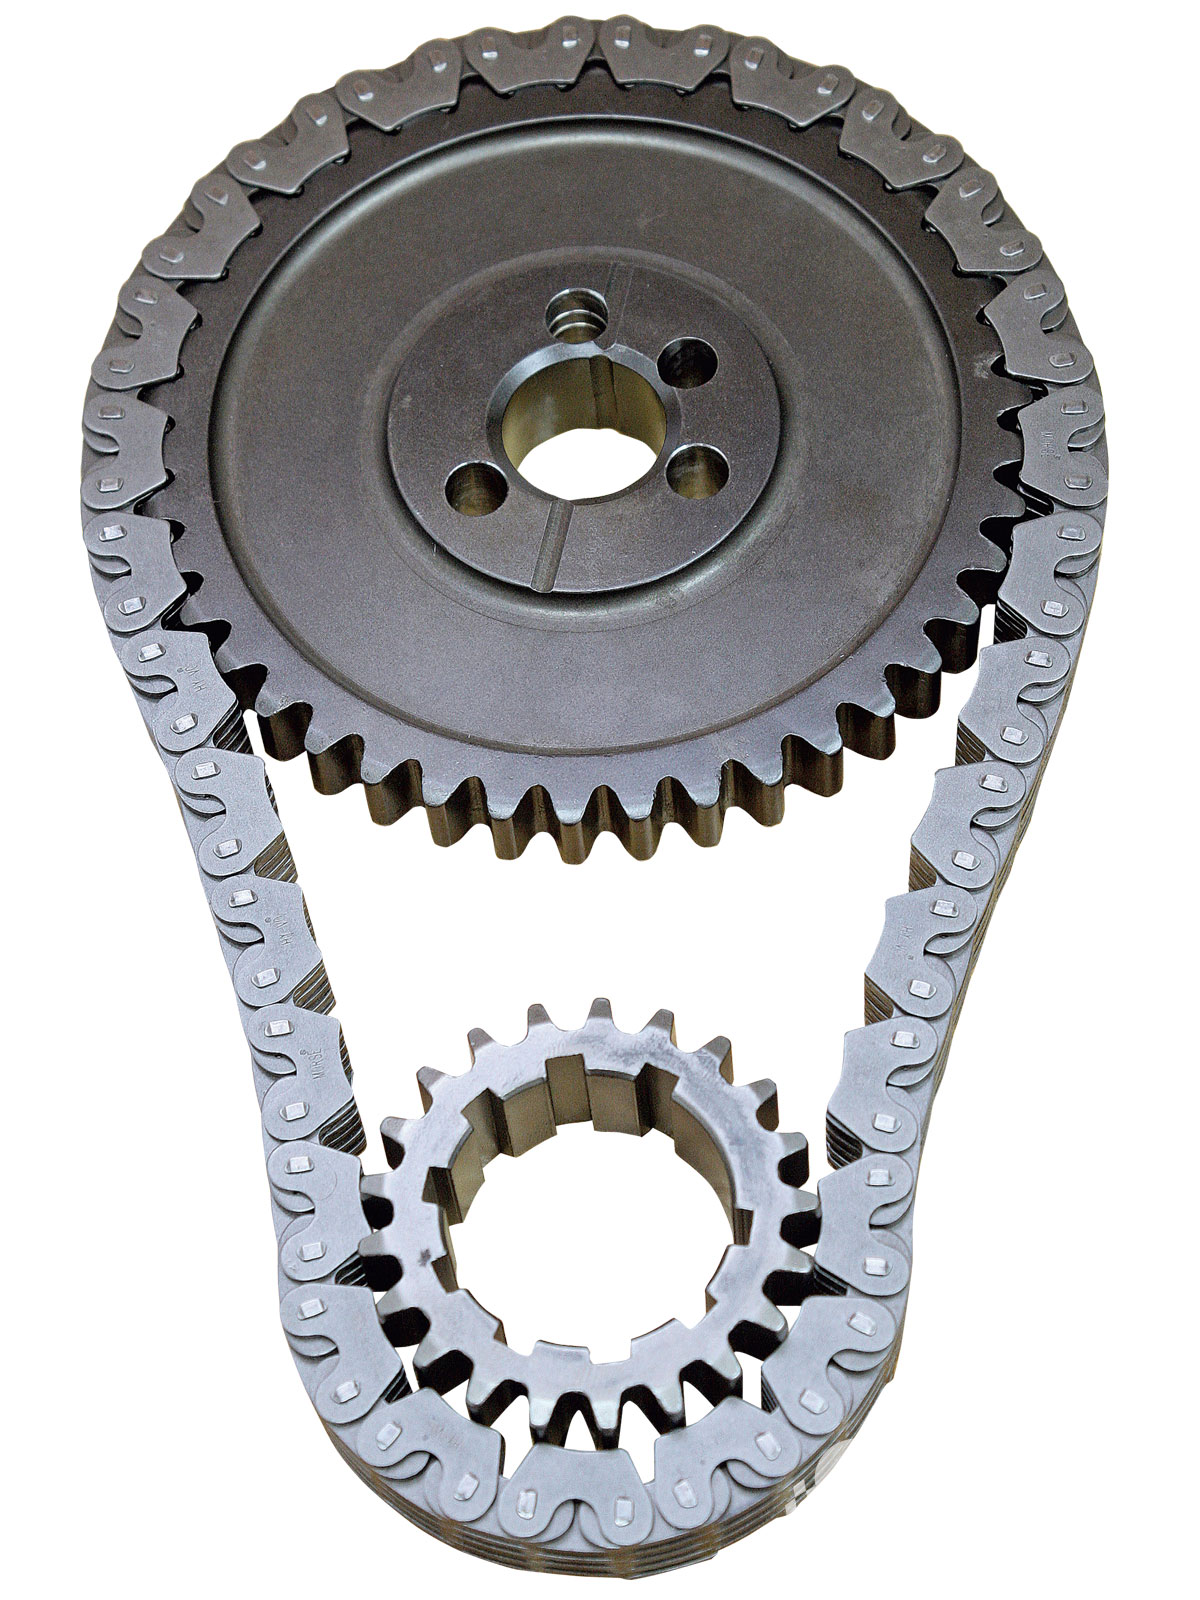 XTrail Nissan Timing Chain Tensioner Noise - image details